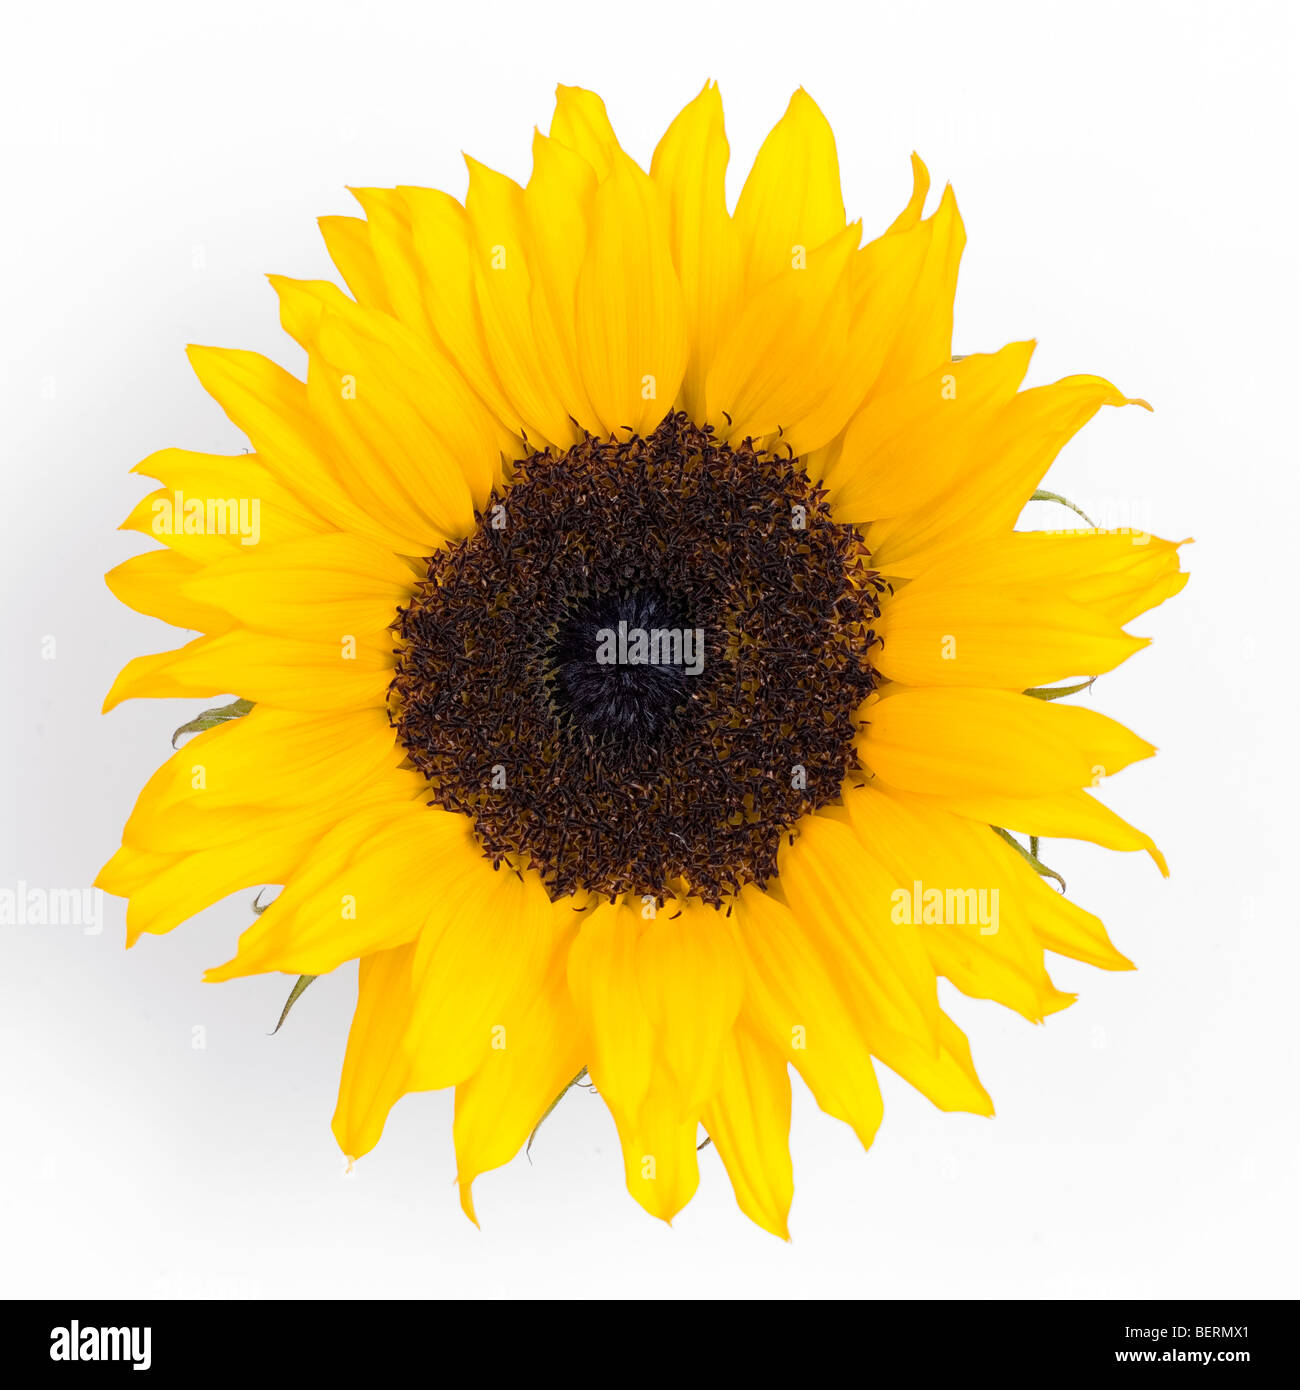 Sunflower against a white background - Stock Image